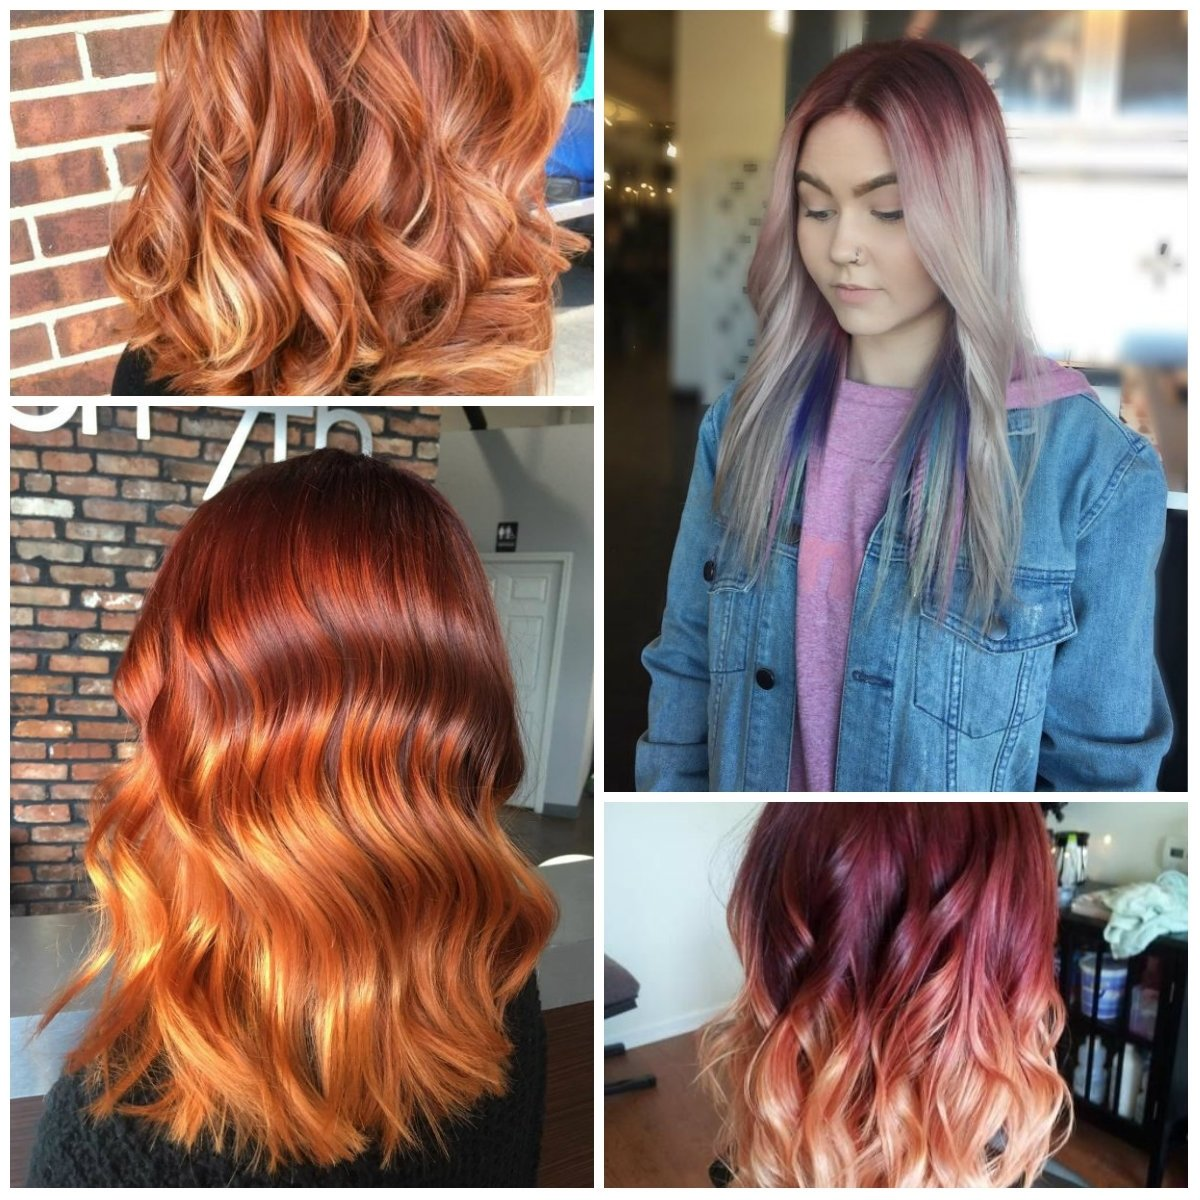 10 Spectacular Brown Red Hair Color Ideas red page 3 best hair color ideas trends in 2017 2018 2020